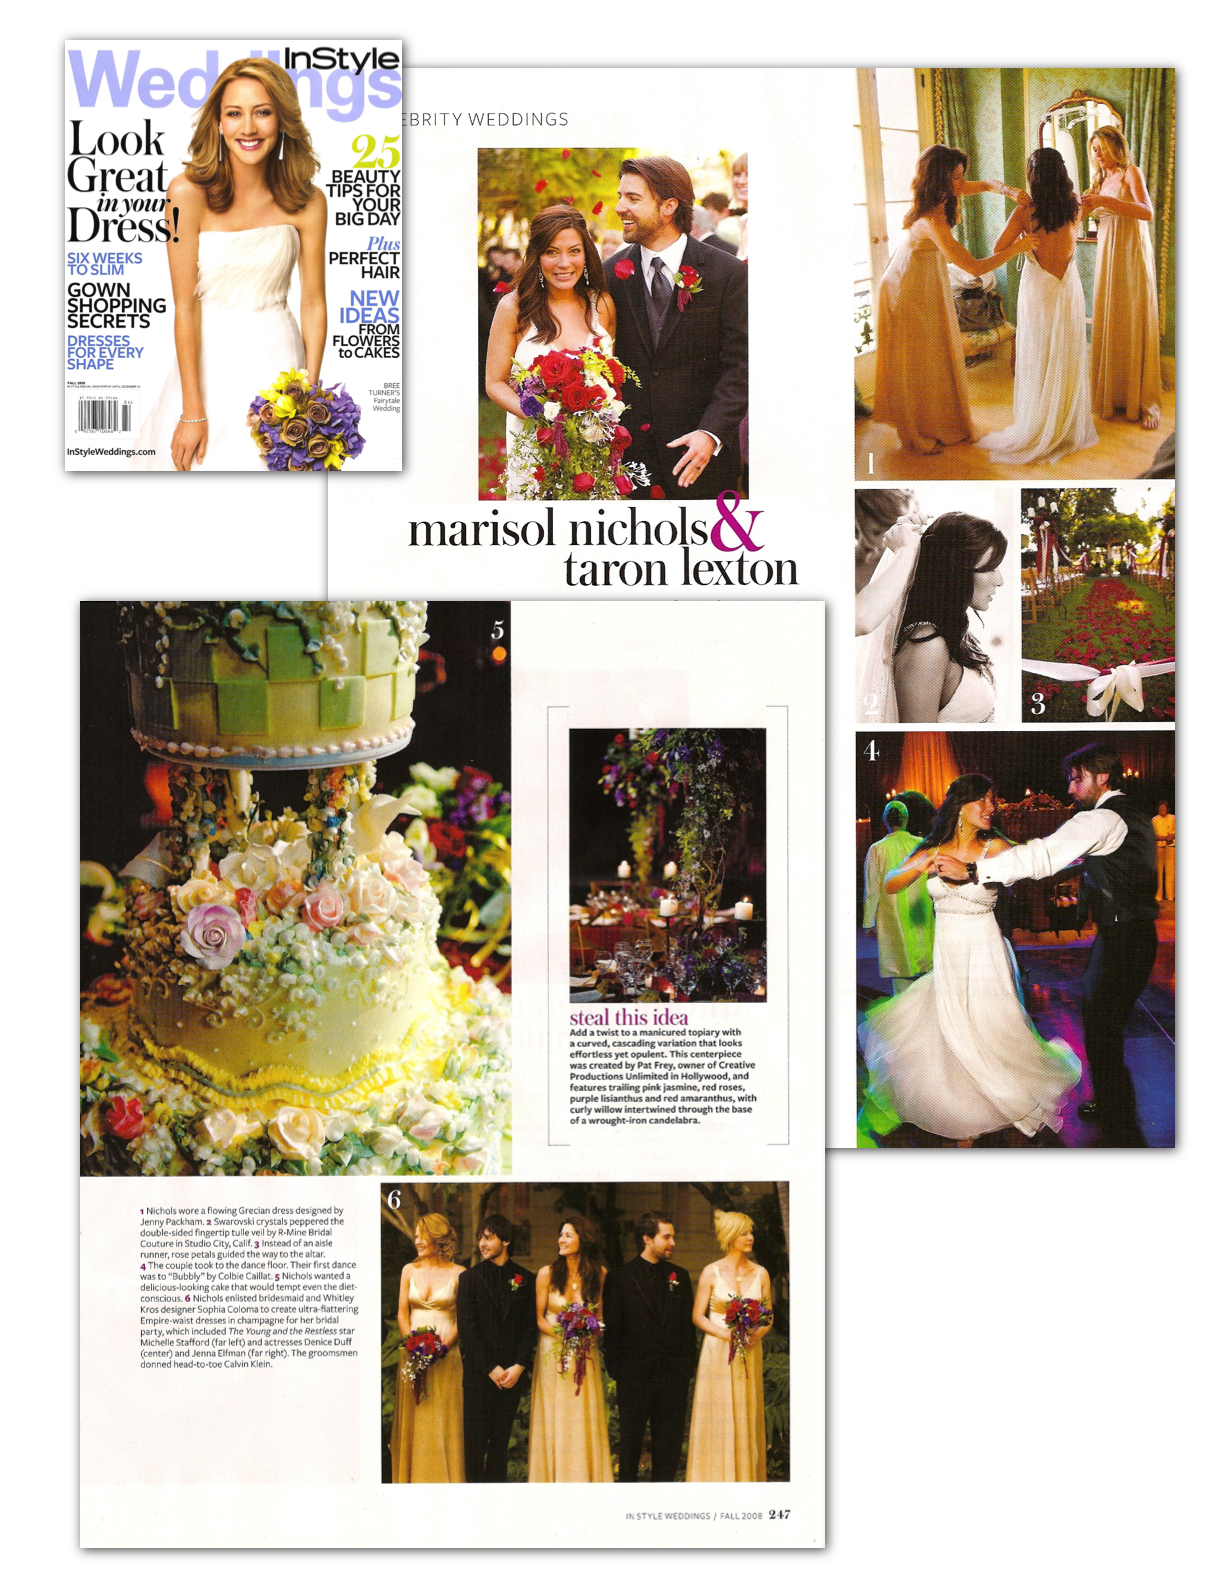 InStyle Weddings, Marisol Nichols, MWPR publicity, Los Angeles